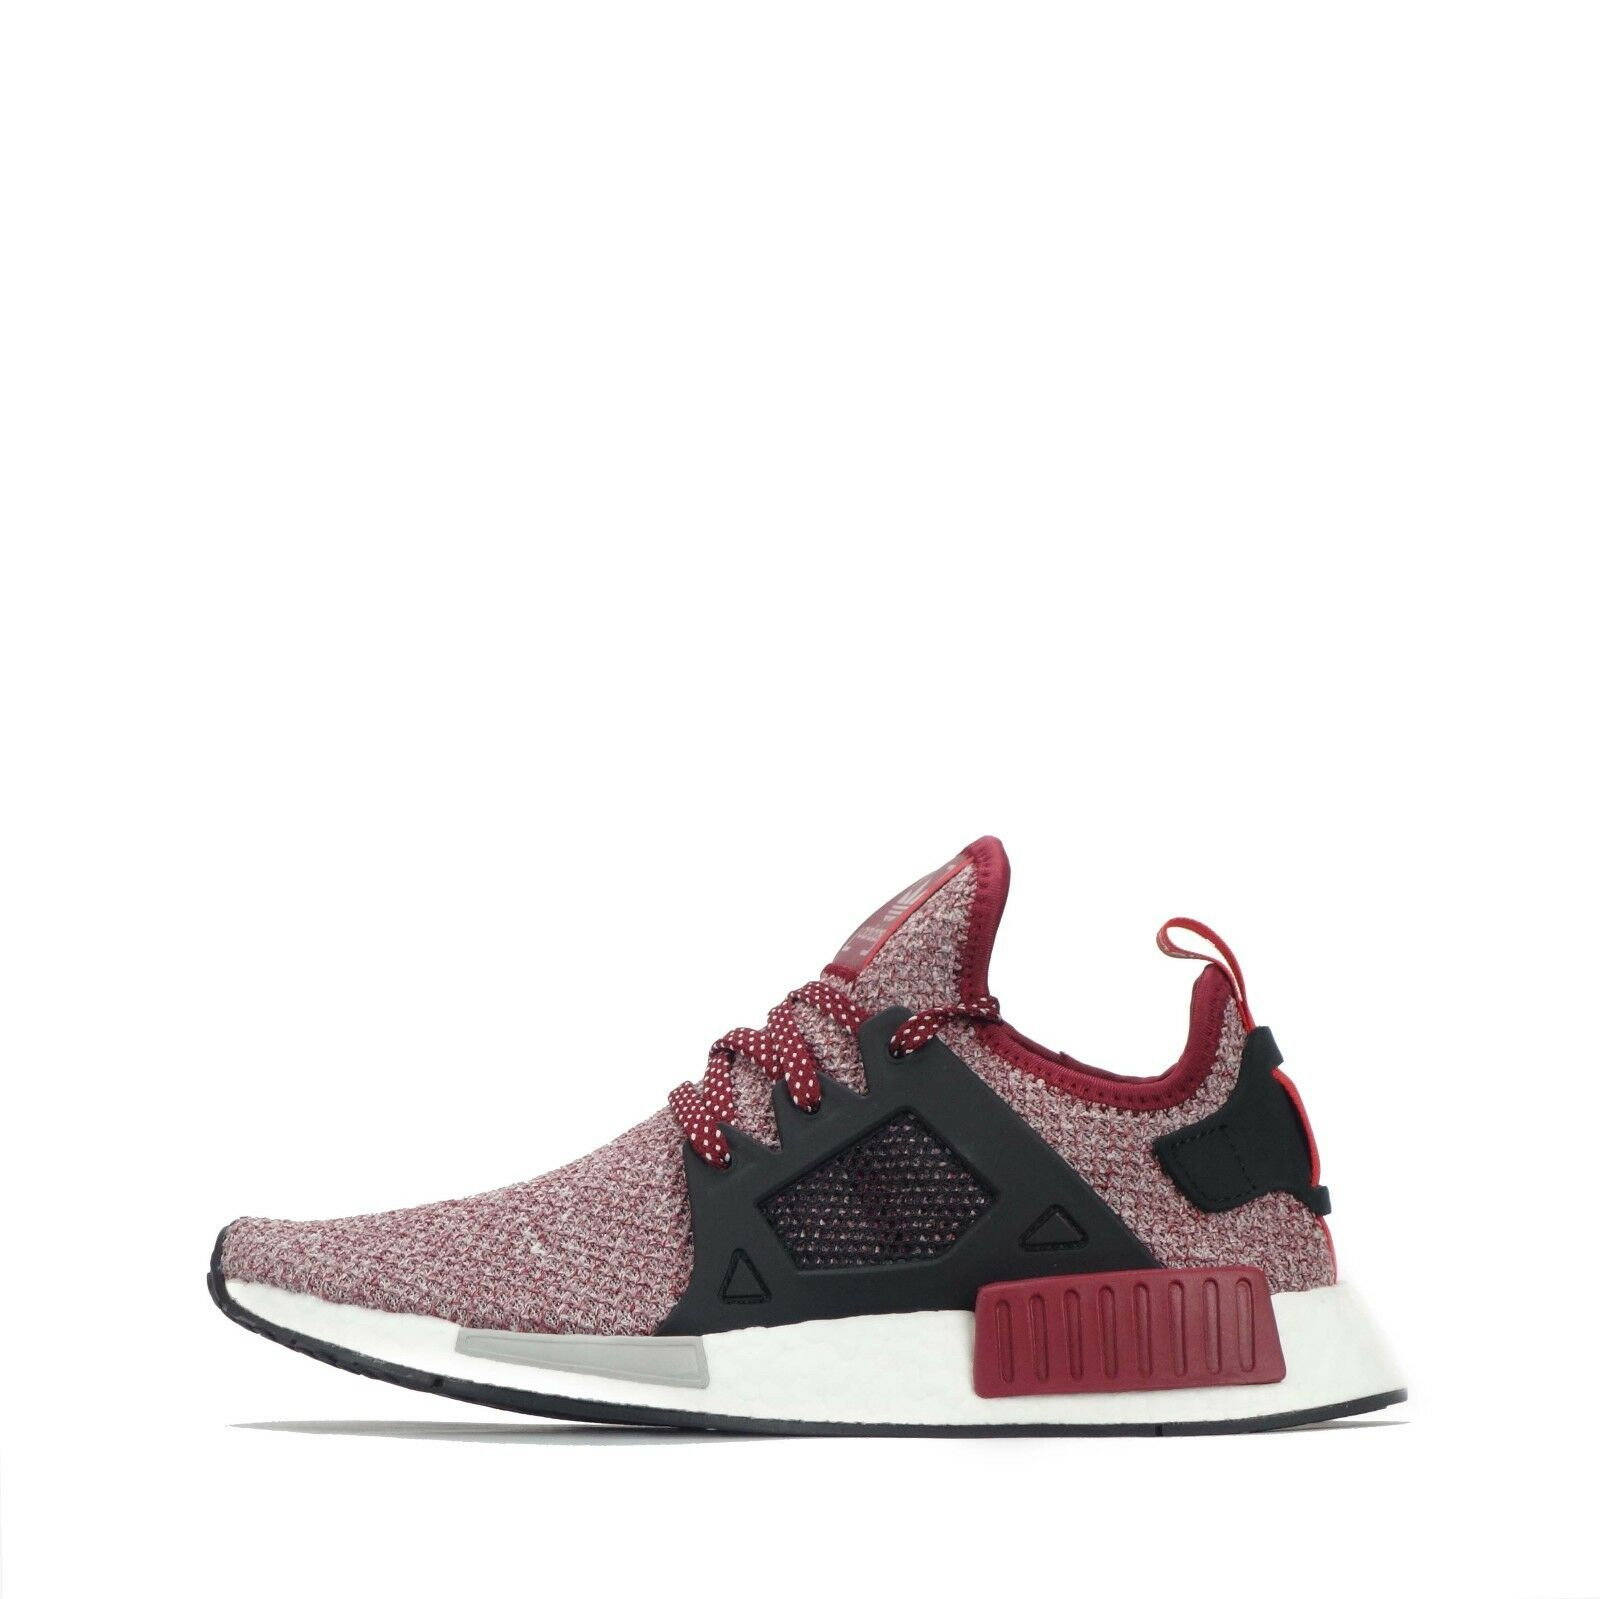 adidas Originals NMD XR1 Mens Trainers in in in Burgundy 860758